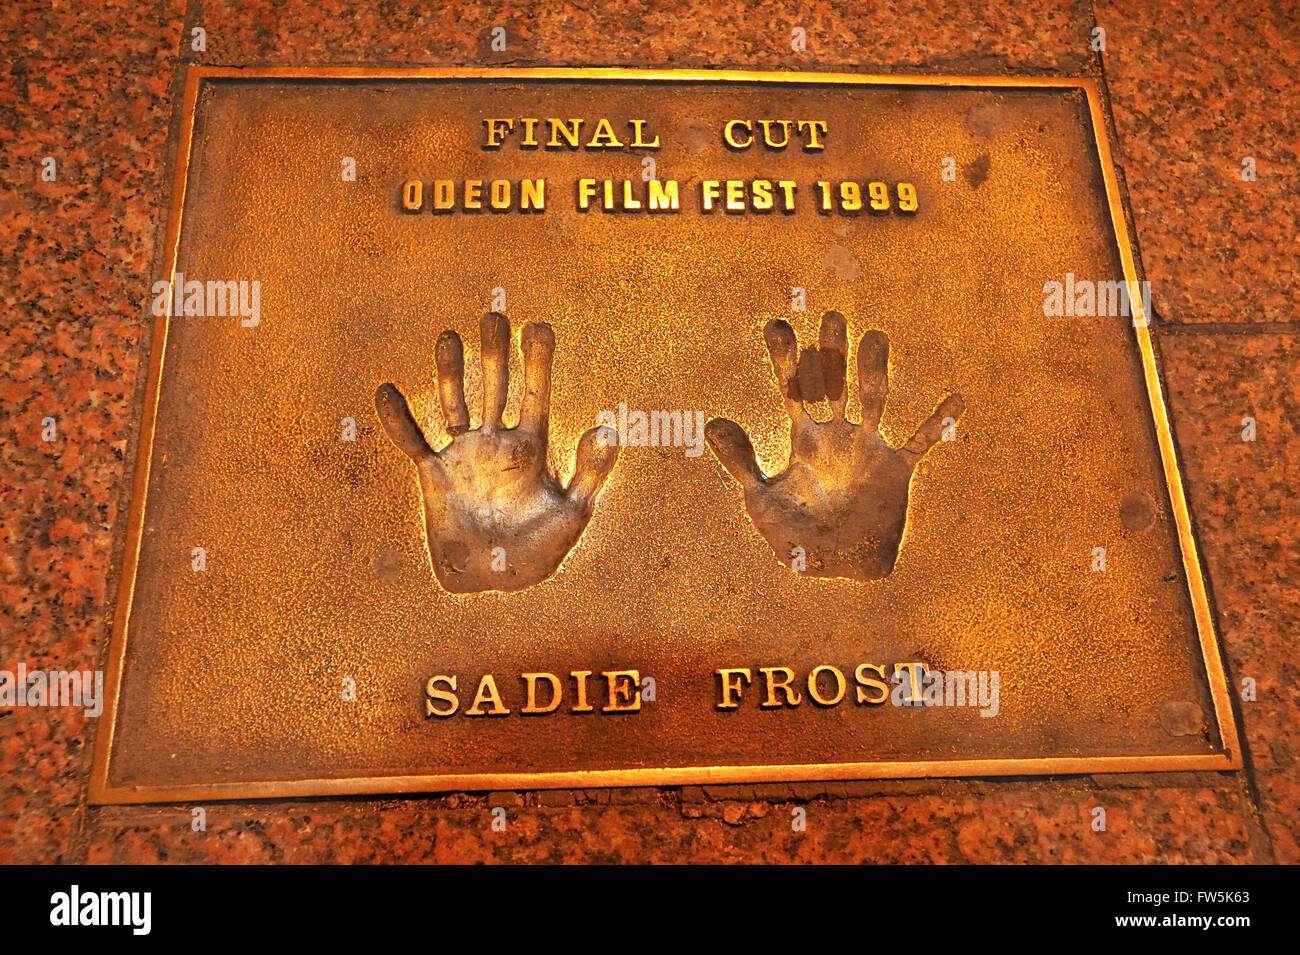 bronze plaque of handprint set into the pavement of Leicester Square: of Sadie Frost: 'Final Cut' Odeon - Stock Image